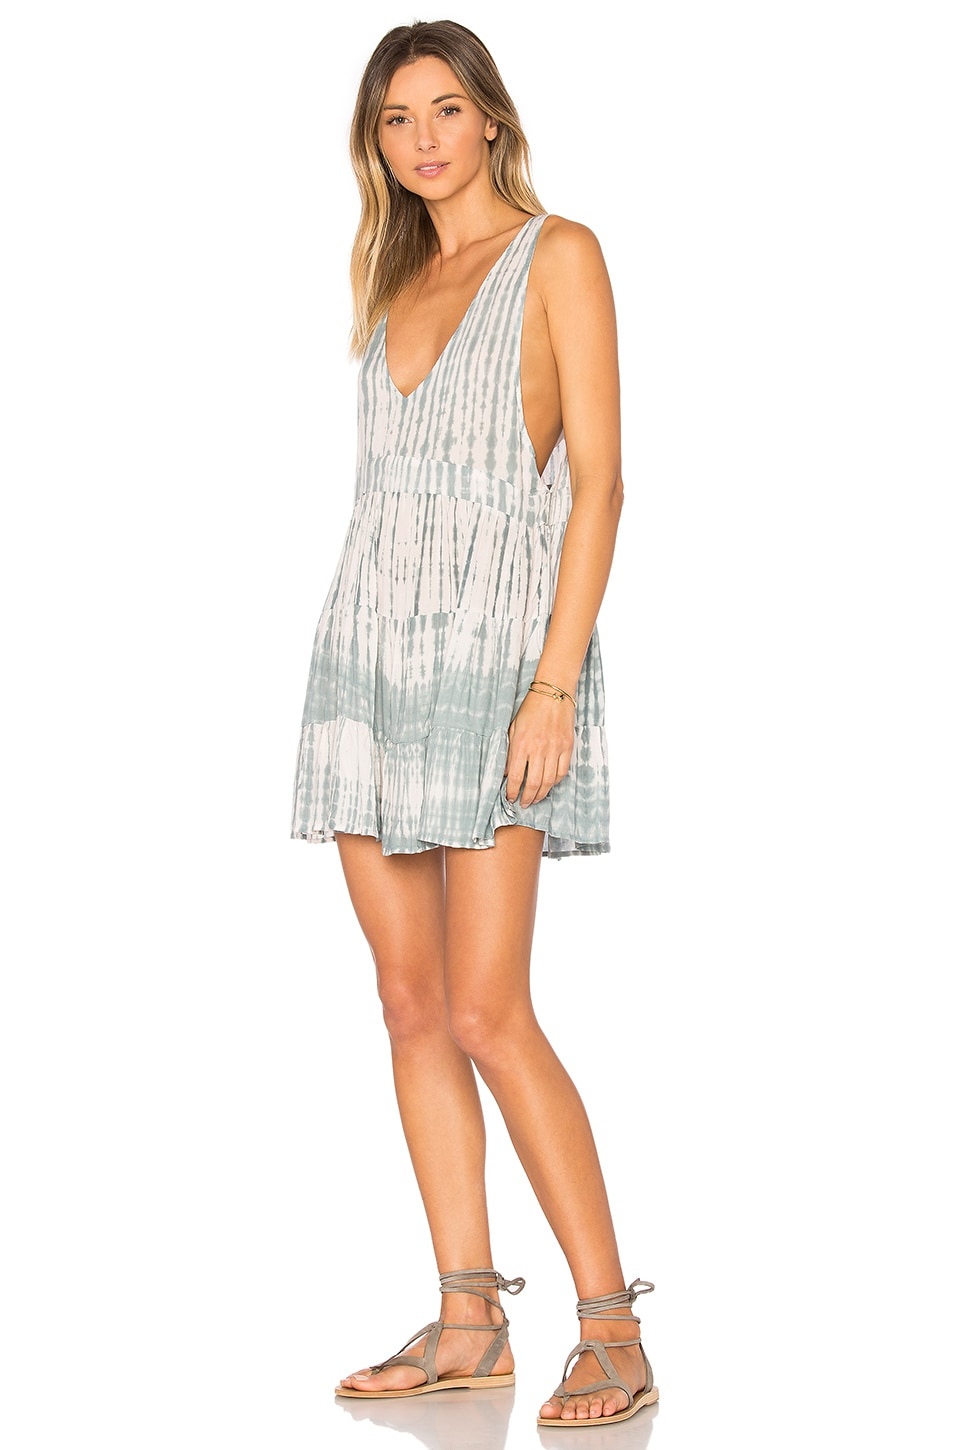 Acacia Swimwear Havana Mini Dress in Shibori